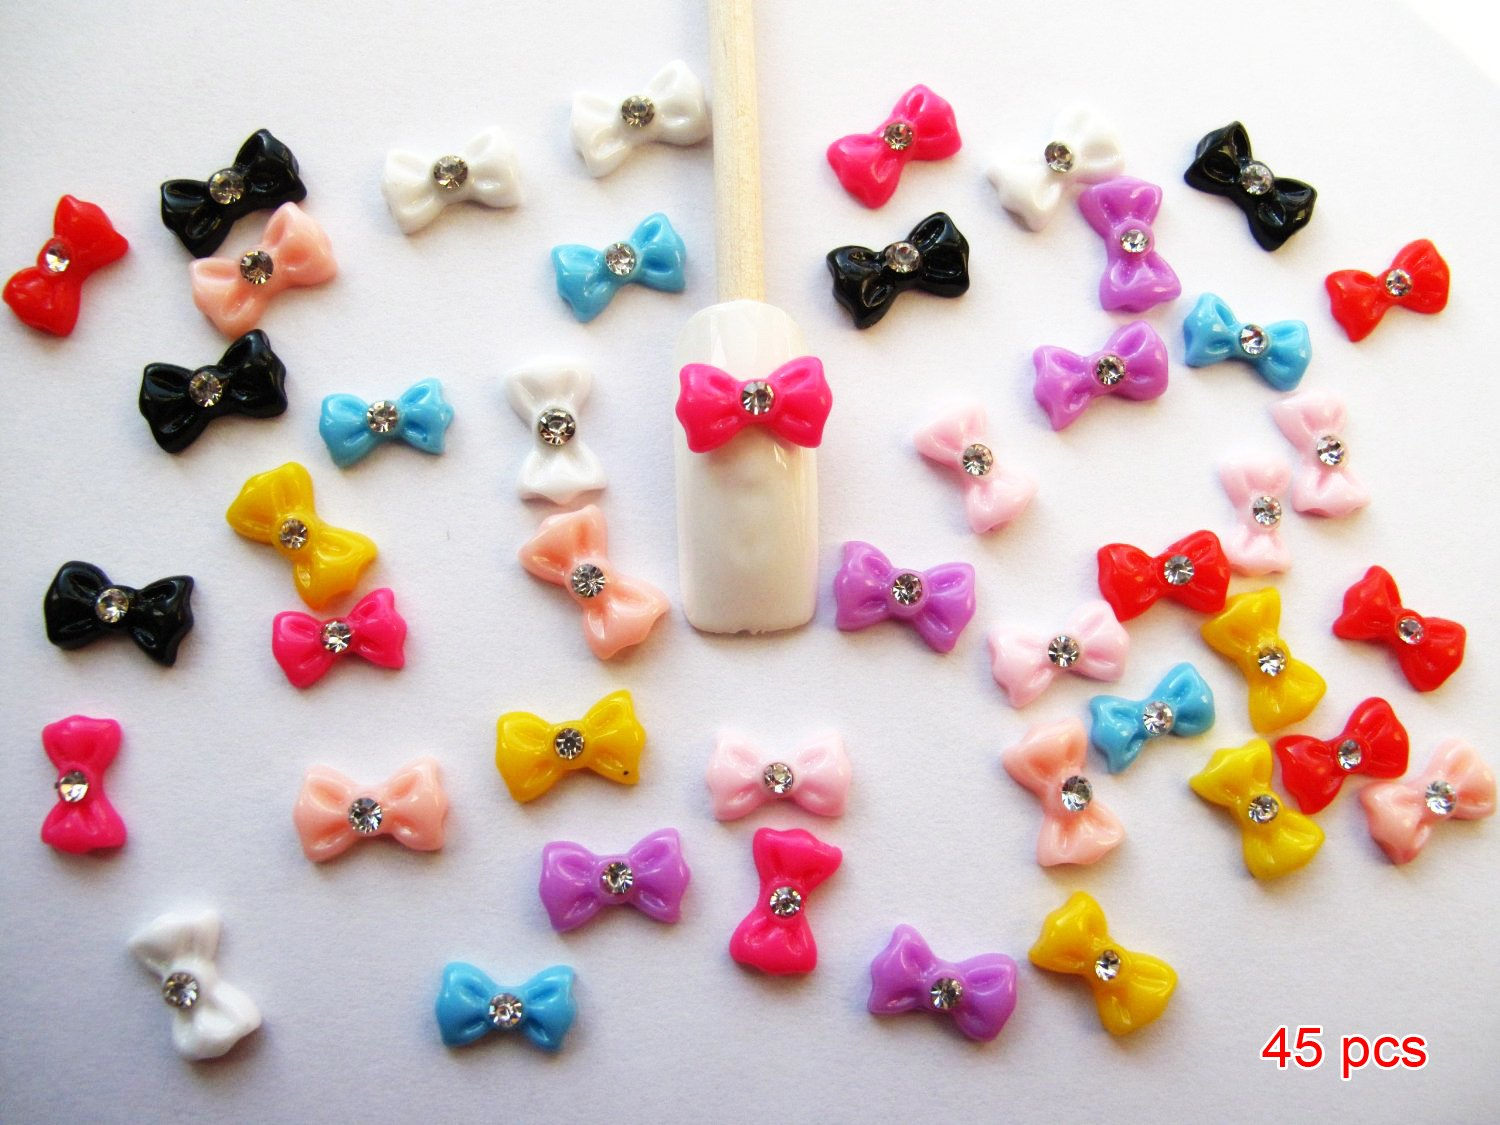 Amazon.com: Nail Art 3d 45 Pieces Mix Bow/Rhinestone for Nails ...